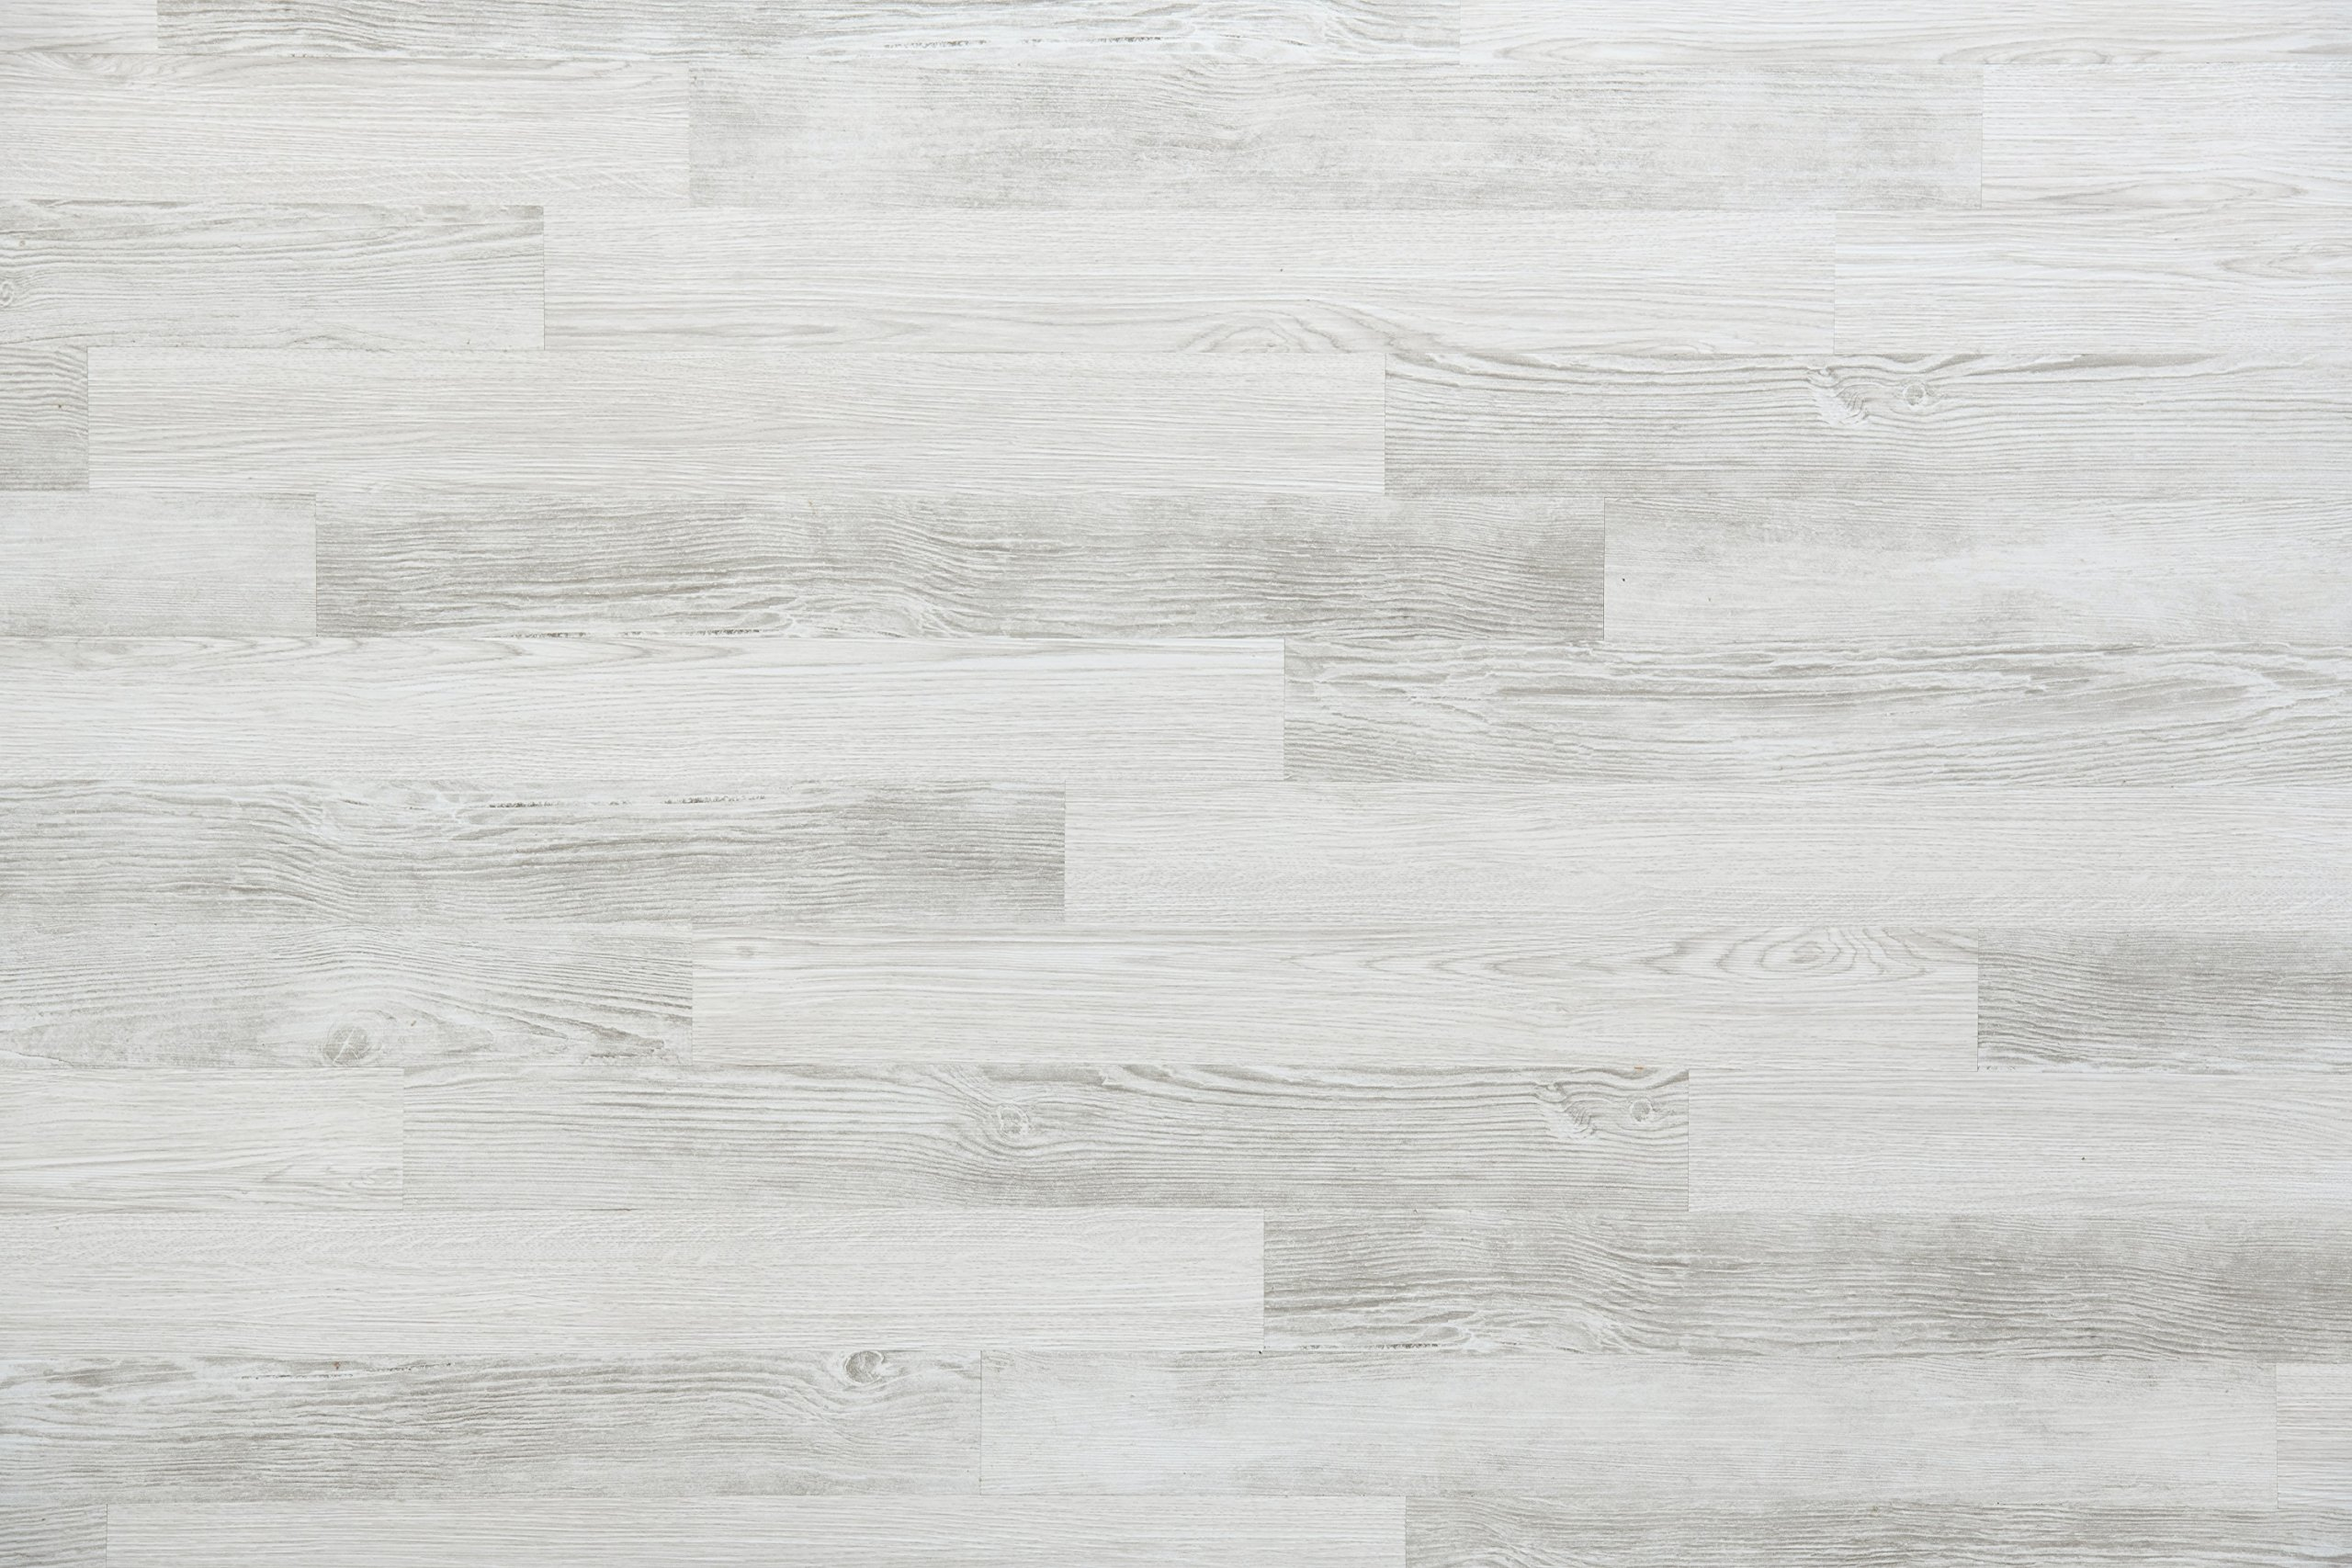 Nance Industries 17905 E-Z Wall Peel and Press Planks, 4''X36'', White Wash Barnwood Colors, 20 Planks